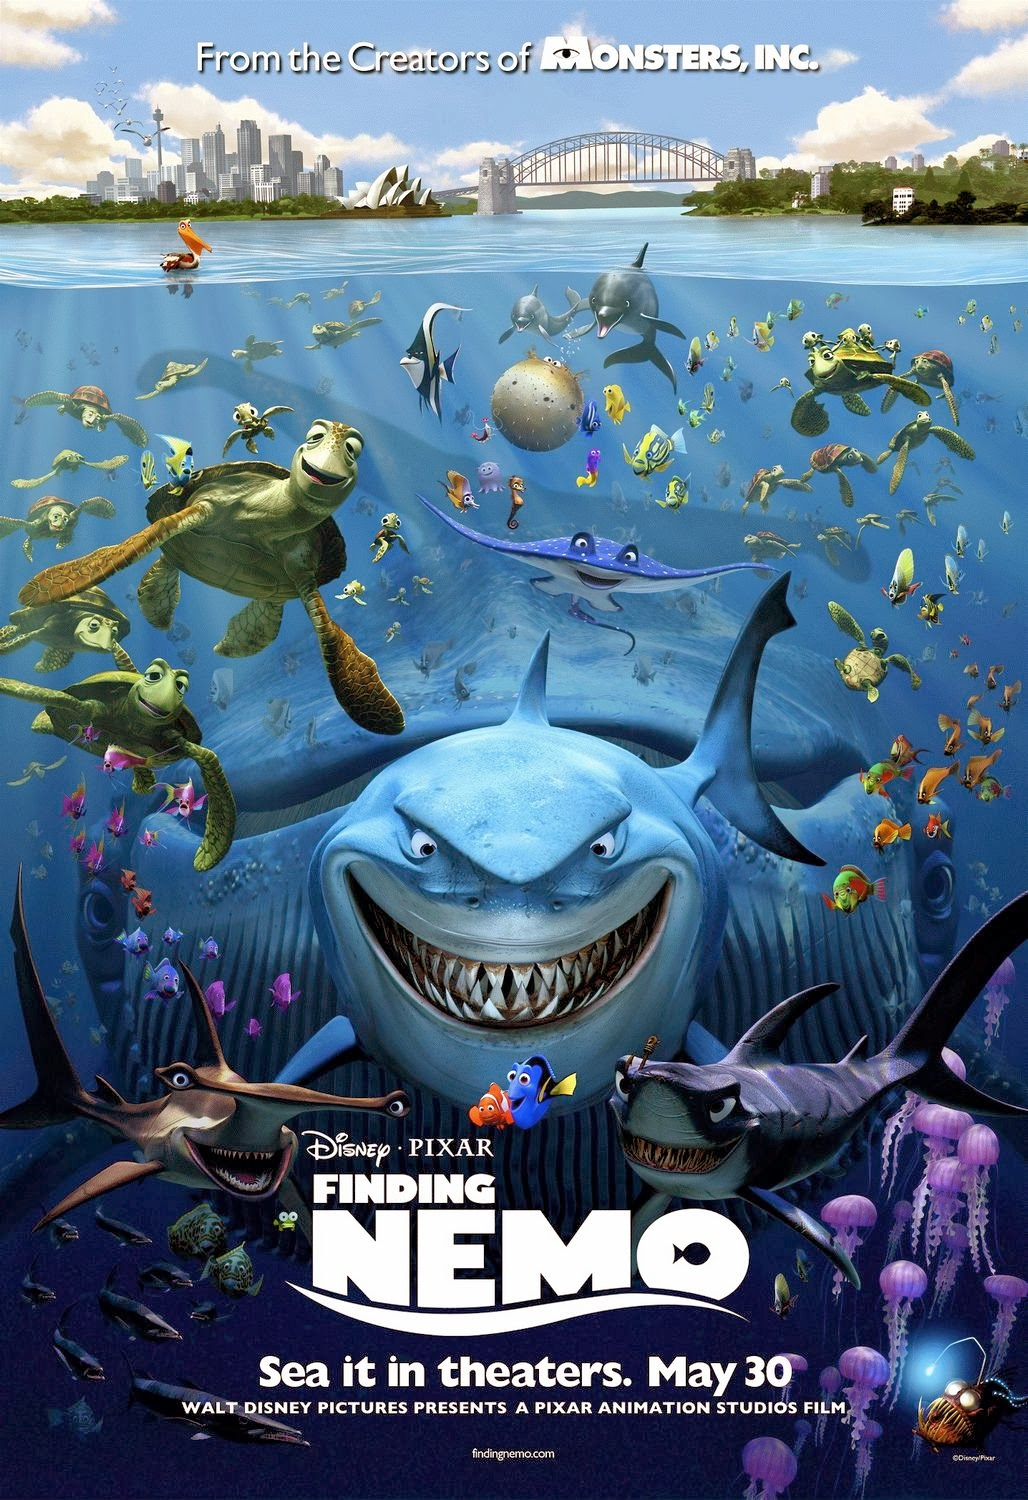 Finding nemo 2003 watch online for free full movie english stream